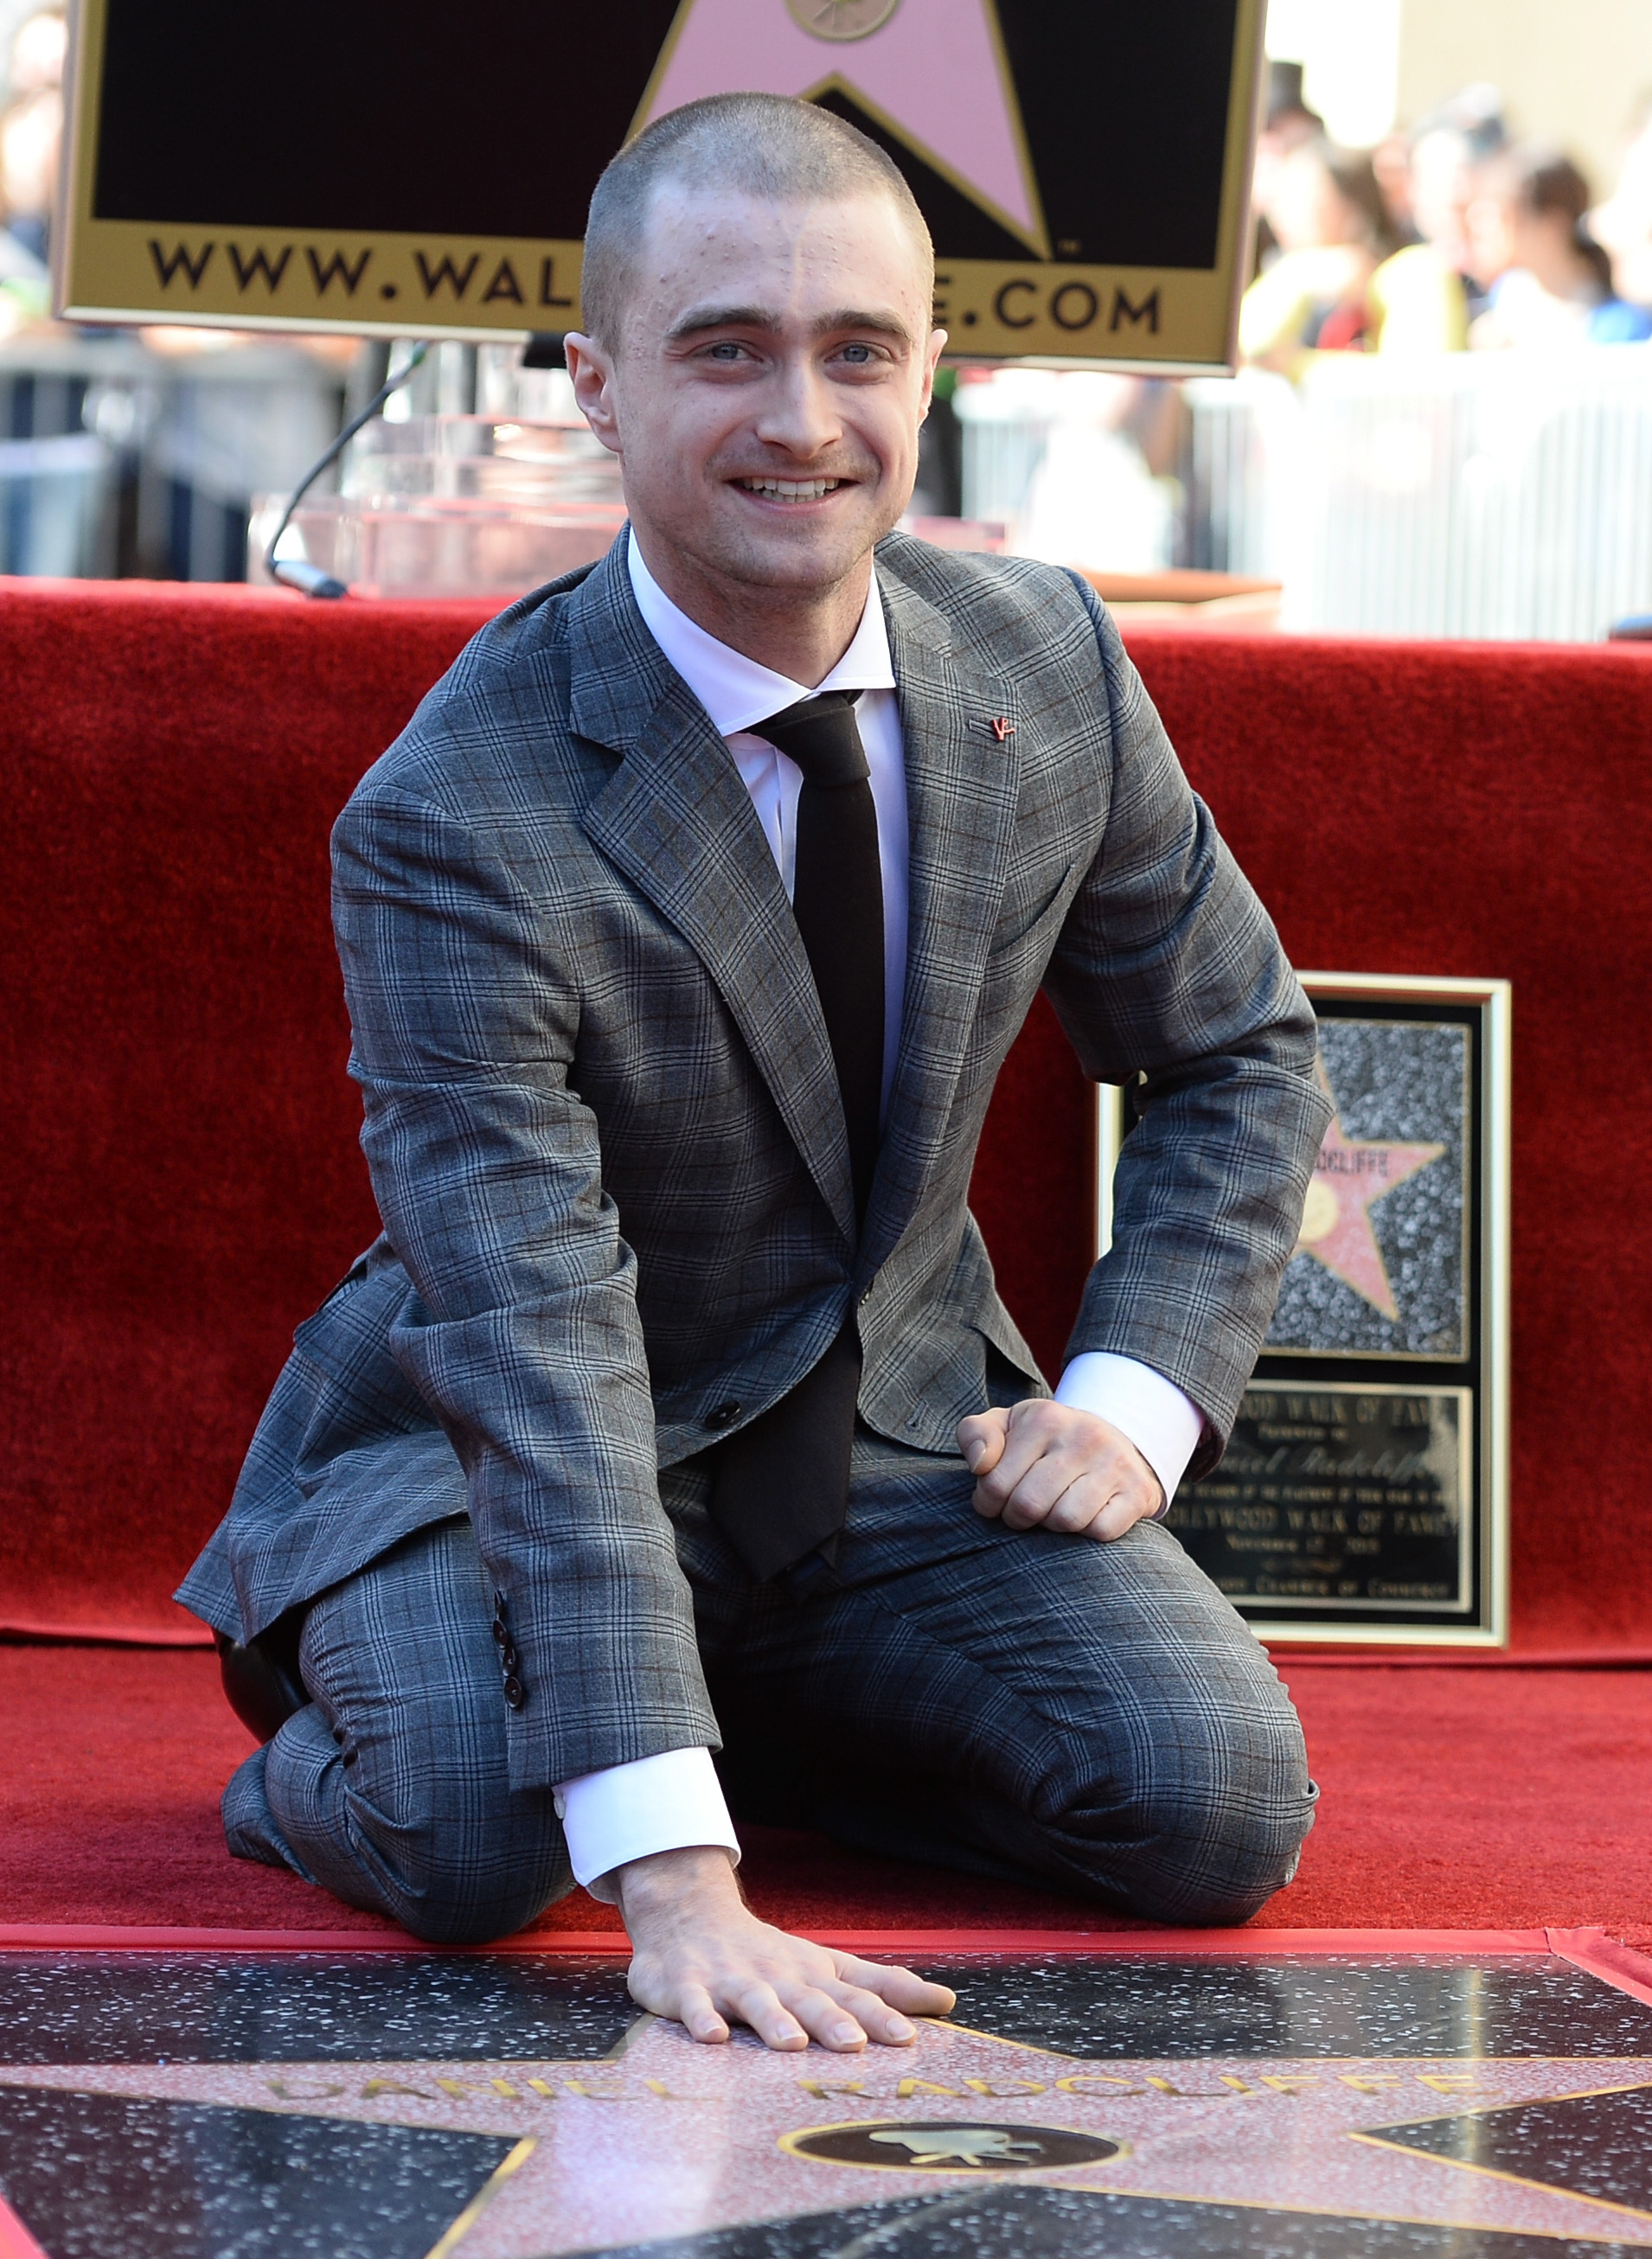 Actor Daniel Radcliffe is honored with a star on The Hollywood Walk of Fame on November 12, 2015 in Hollywood, California.